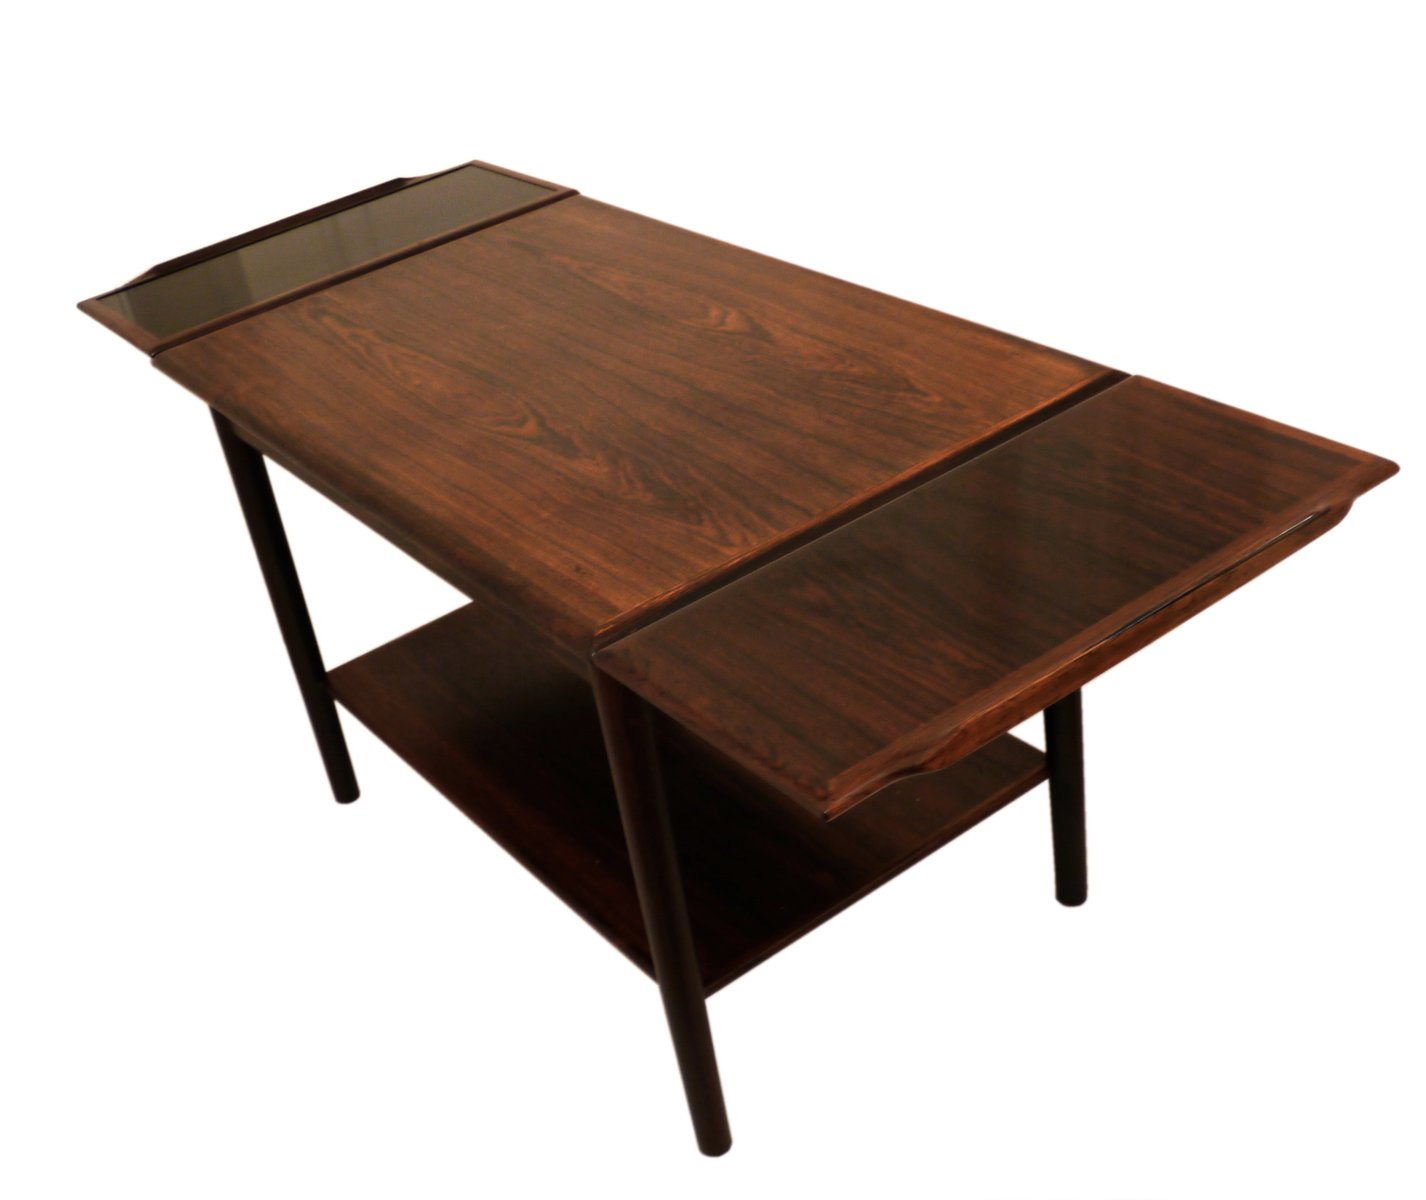 Danish Mid-Century Expandable Rosewood Coffee Table, 1960s